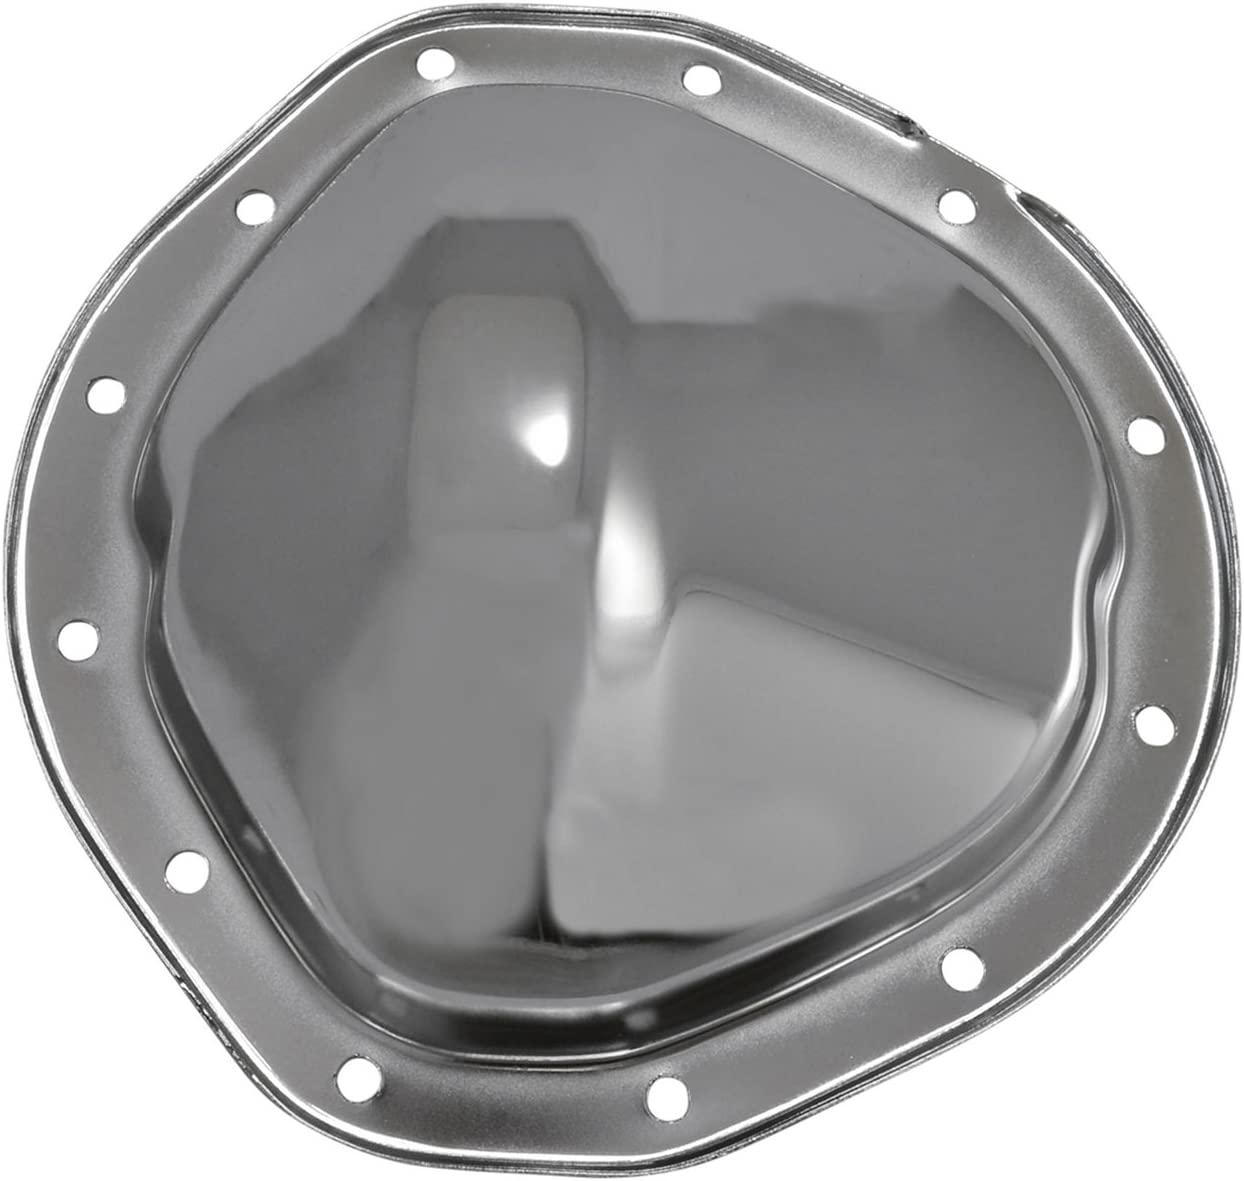 Yukon YP NEW Very popular C1-GM12T Chrome Cover for Differenti 12-Bolt GM Truck